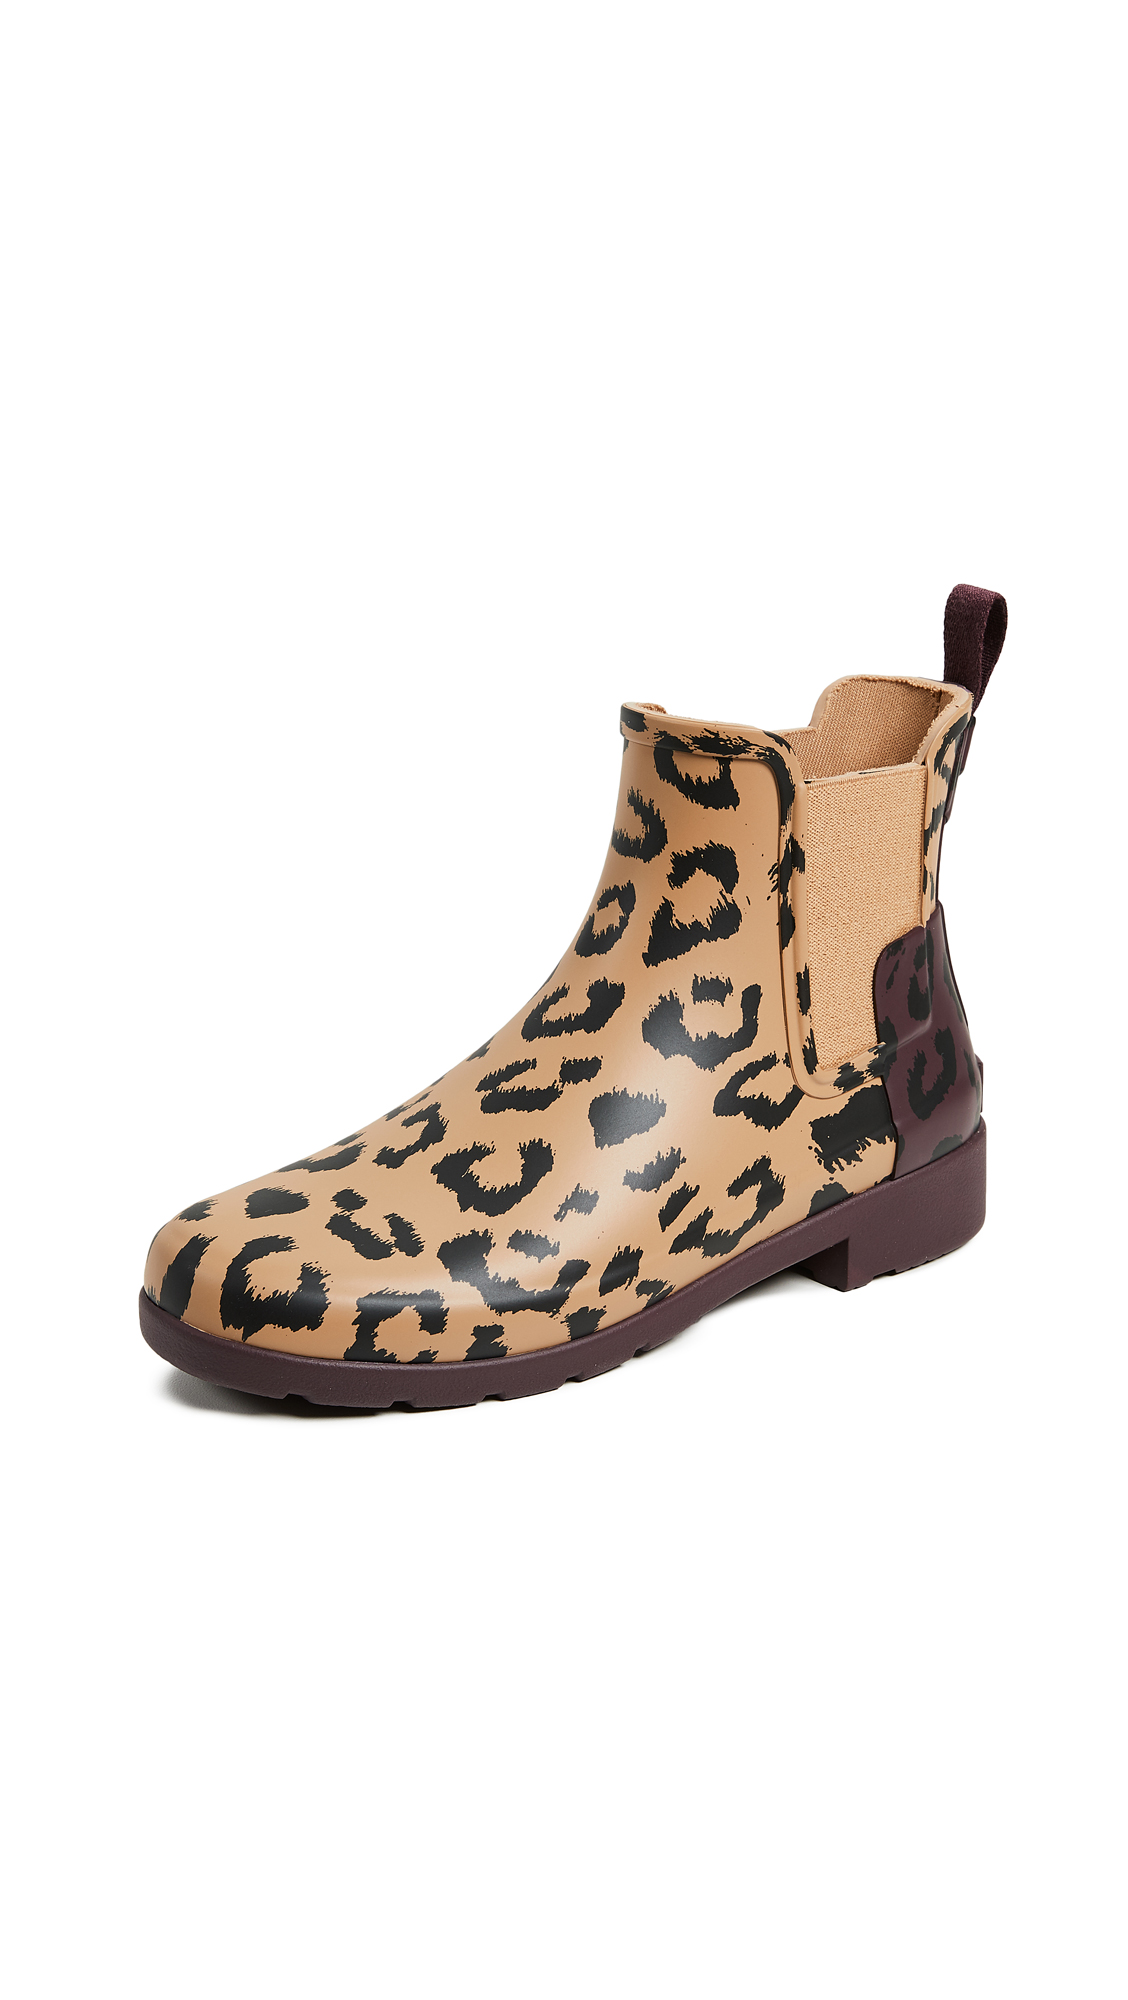 Hunter Boots Refined Chelsea Hybrid Print Boots - Tawny/Oxblood